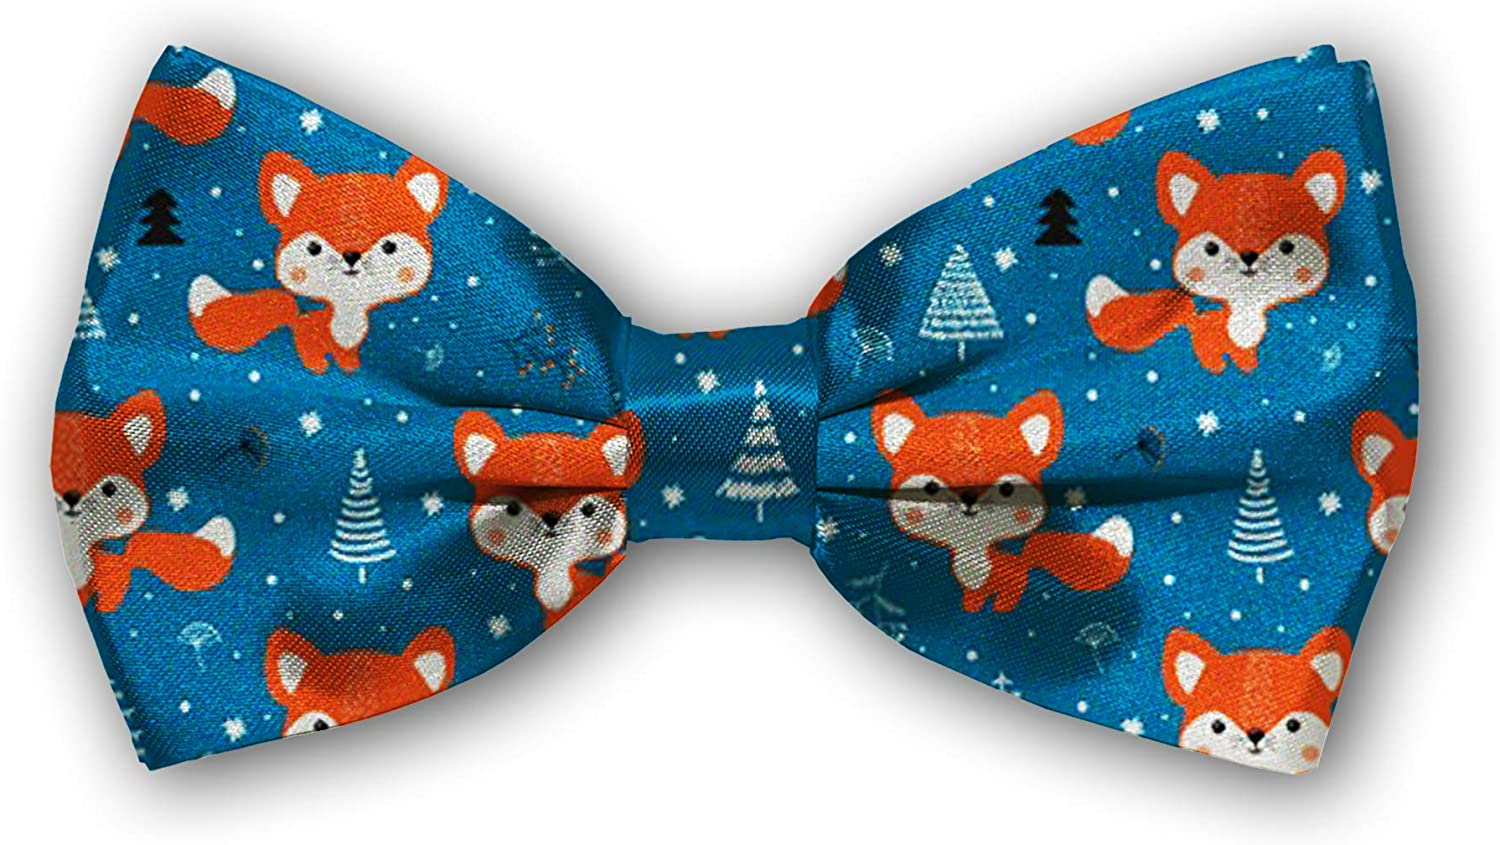 Bow Tie Tuxedo Butterfly Cotton Ranking TOP9 Bowtie Adjustable Mens for Boys Opening large release sale